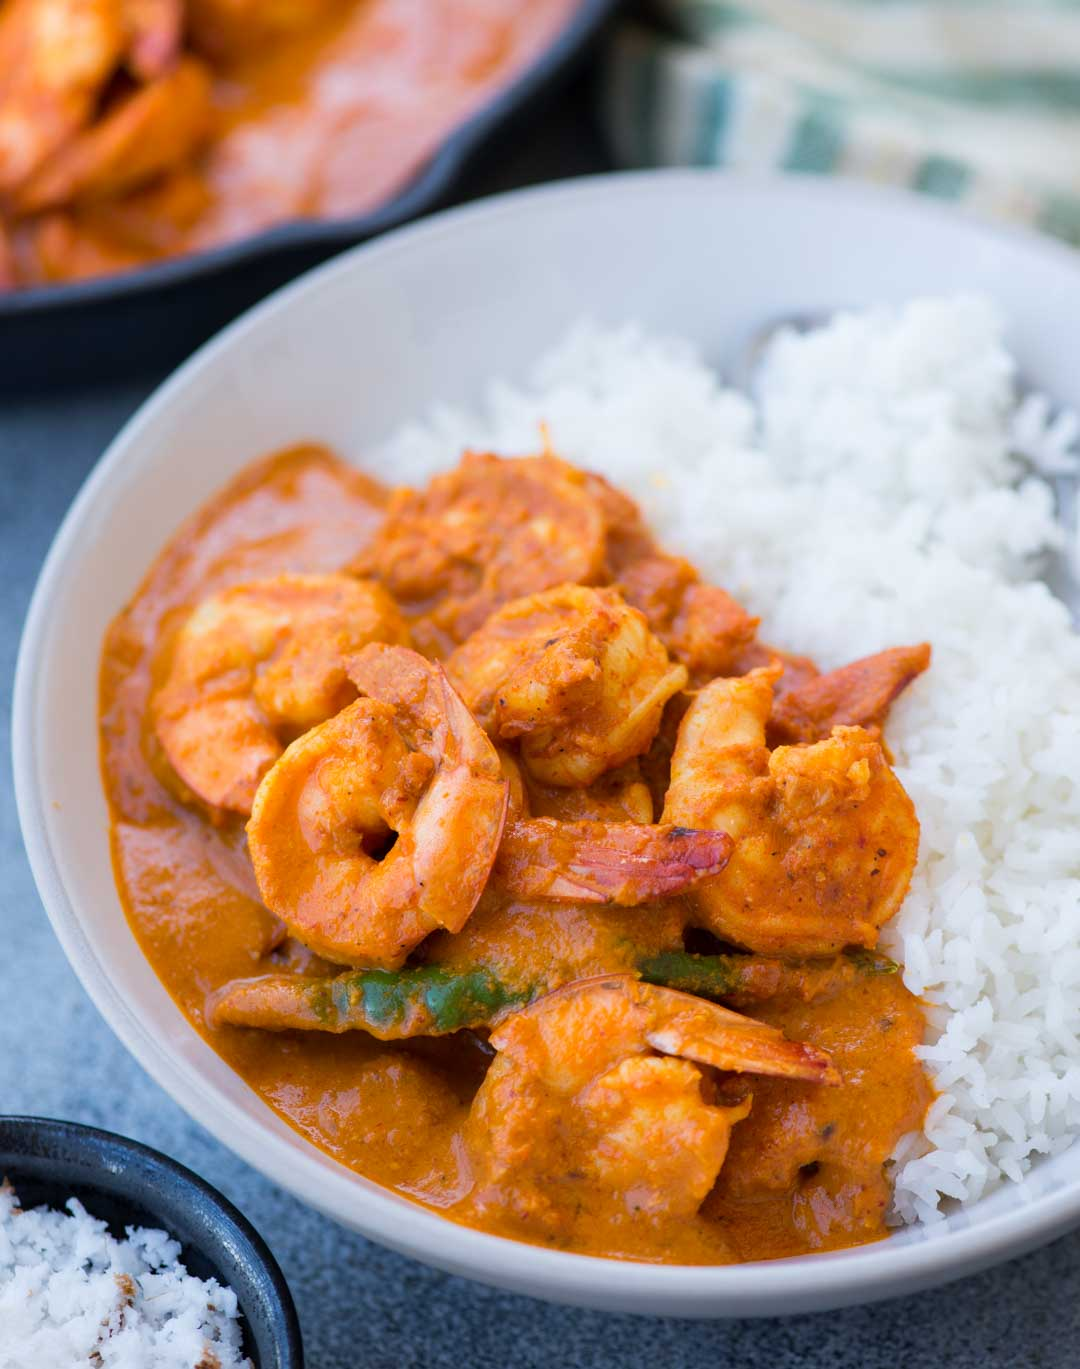 Prawns cooked in a spicy and tangy coconut based gravy. Goan Prawn curry is quite popular in the Western part of India. It goes very well with steamed white rice.